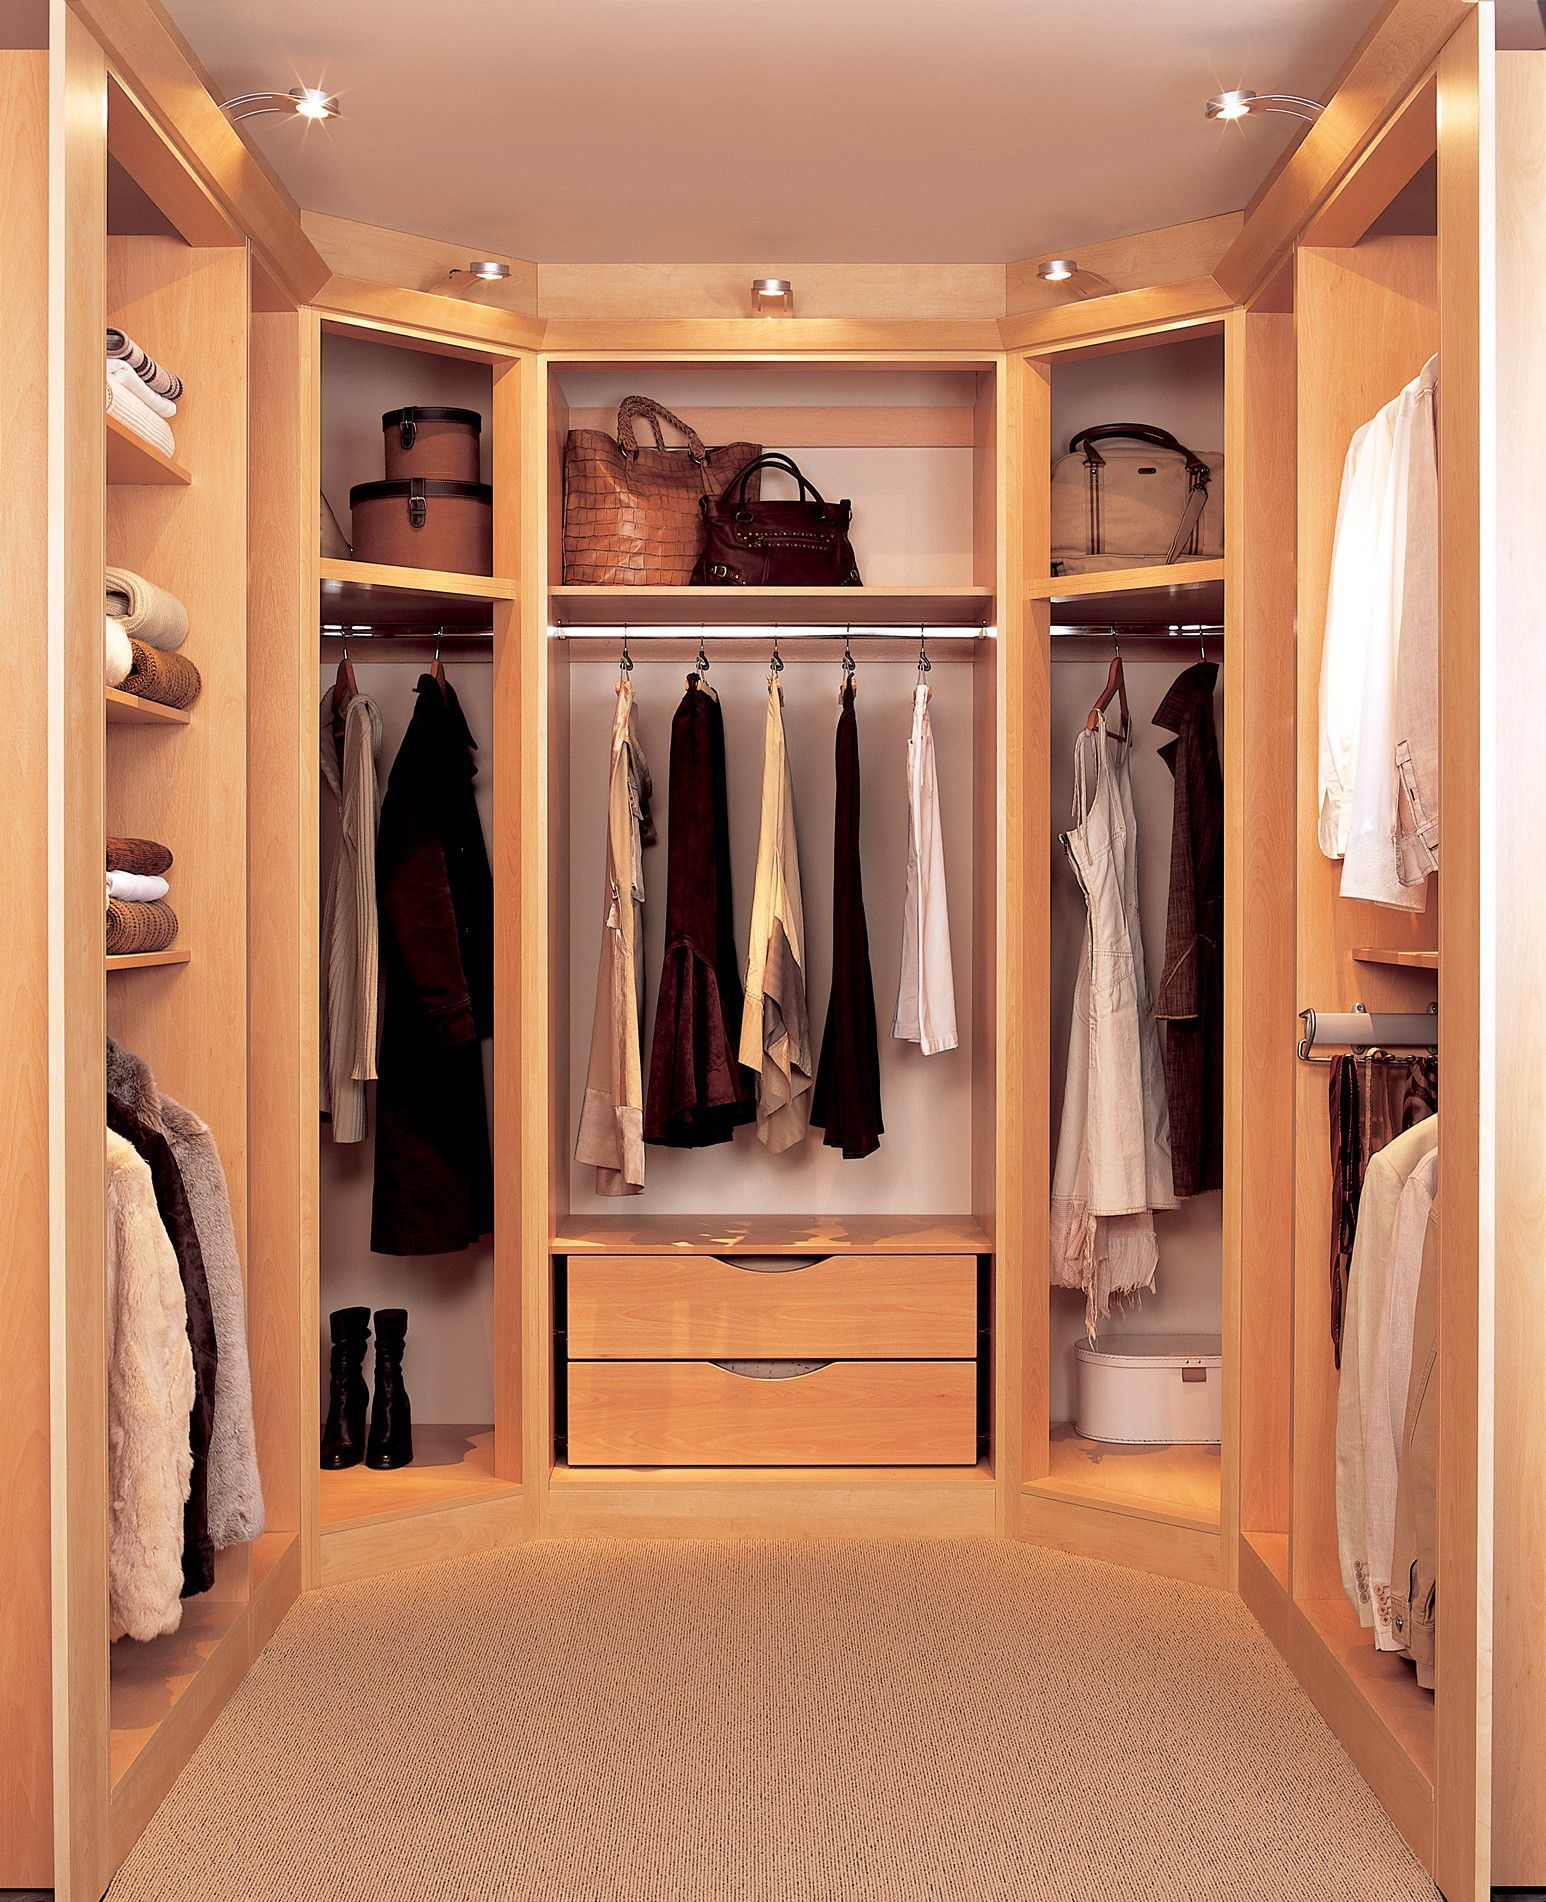 Master Bedroom Closet Design Prepossessing Minimalist Closet Storage Ideas For Small Walk In Closet With Oak Review